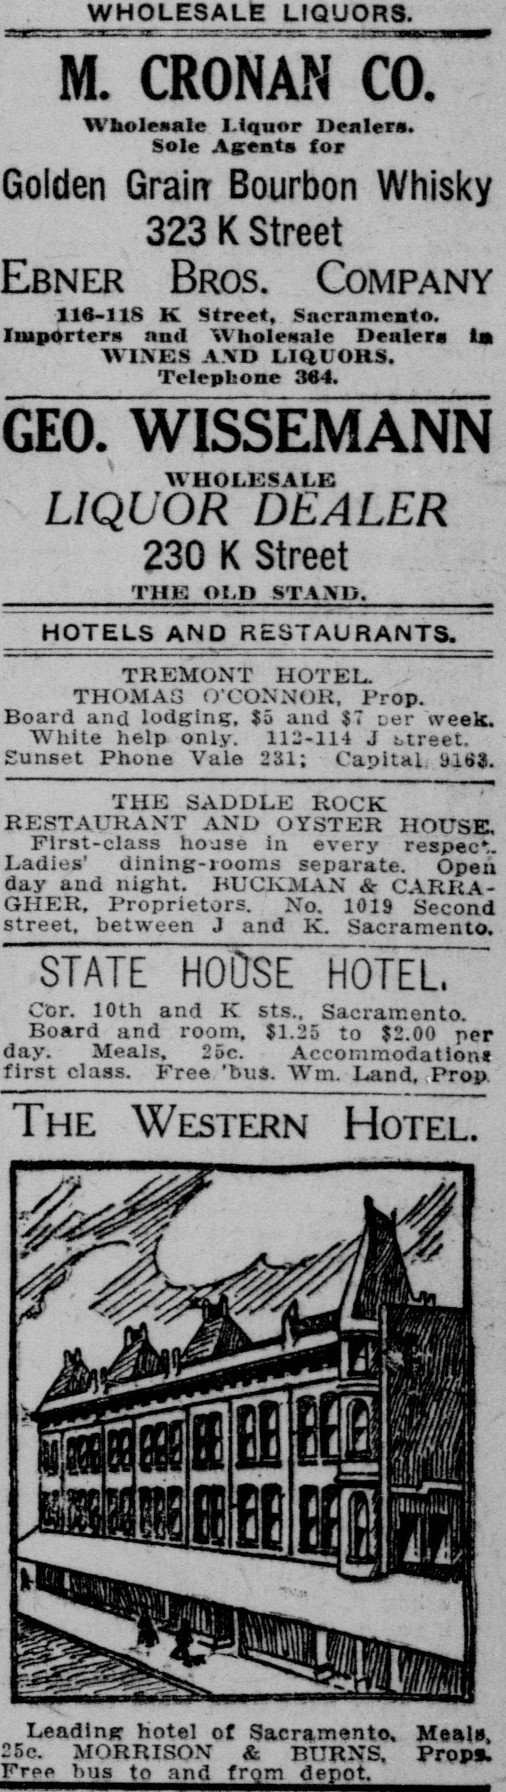 By the early 1900s, much of the Ebner Hotel's revenue was actually due to the sale of liquor--as evidenced by this newspaper advertisement. The hotel's fortunes plunged again when Prohibition outlawed alcohol in the 1920s.